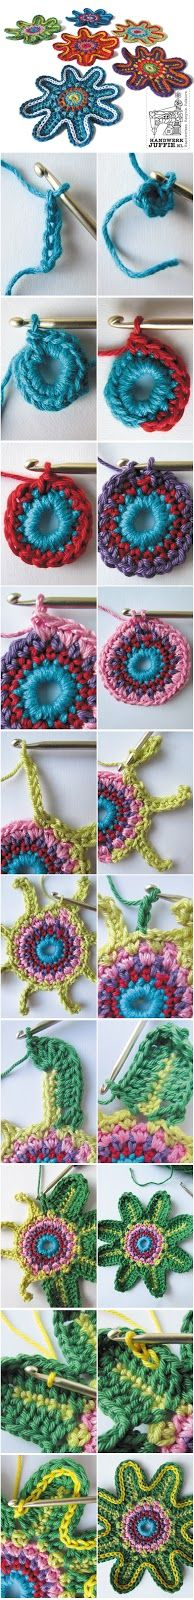 crochet flowers tutorial!!